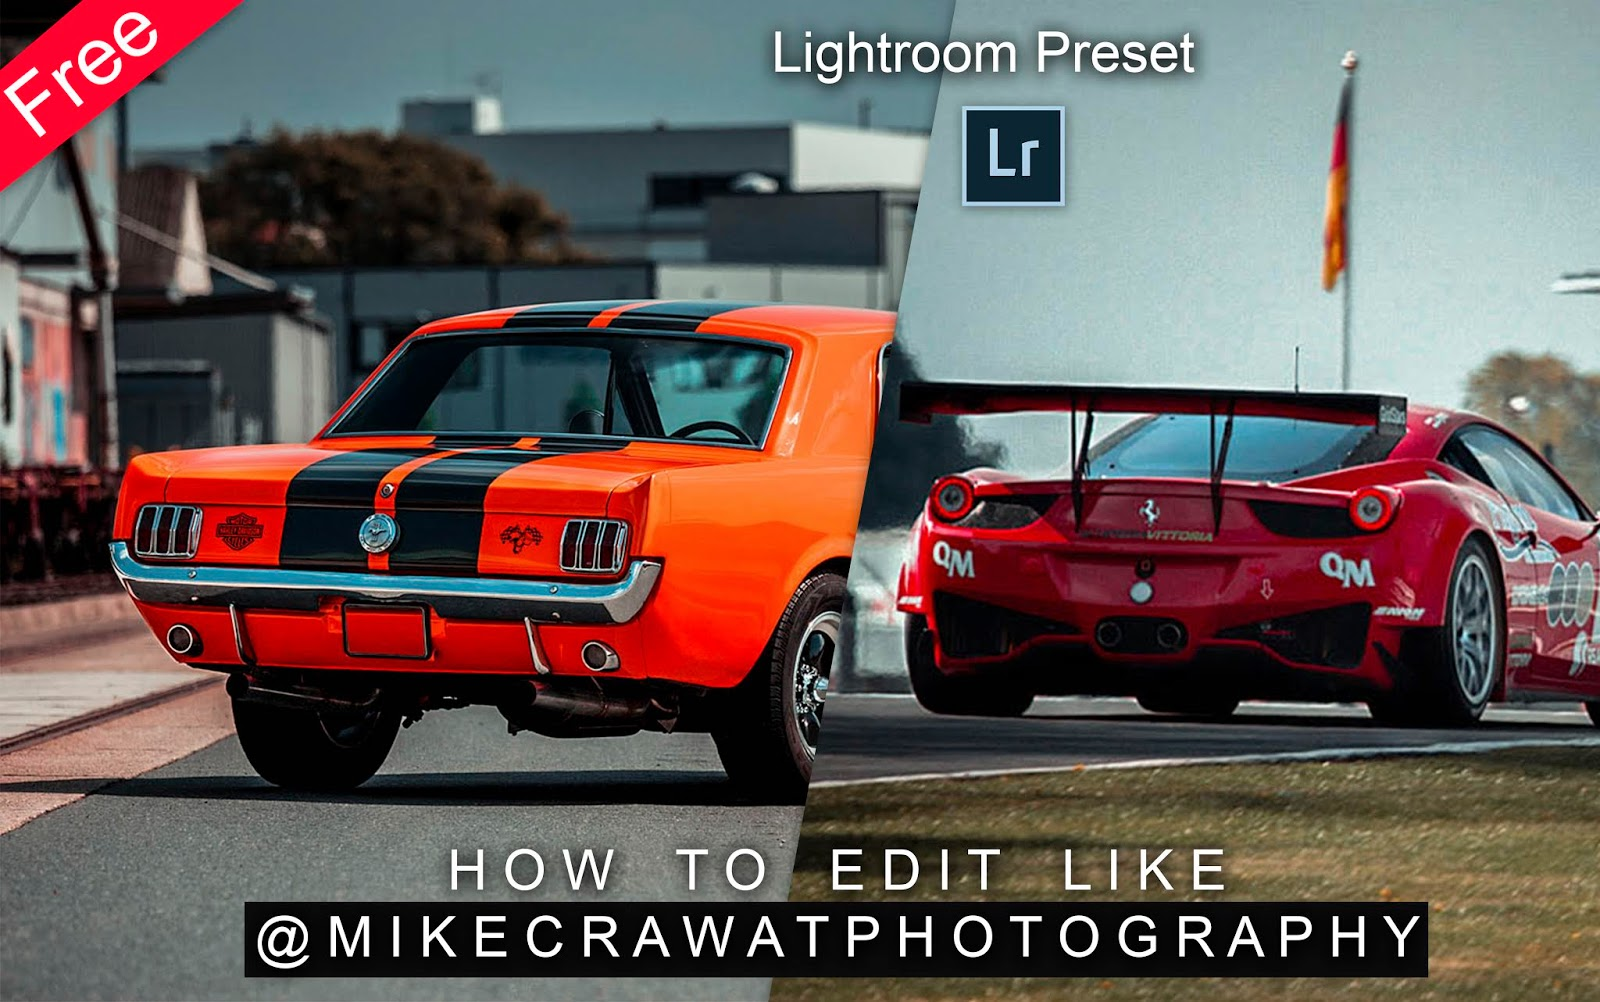 Download Mikecrawatphotography Inspired Lightroom Preset for Free | How to Edit Photos Like Mikecrawatphotography in Lightroom